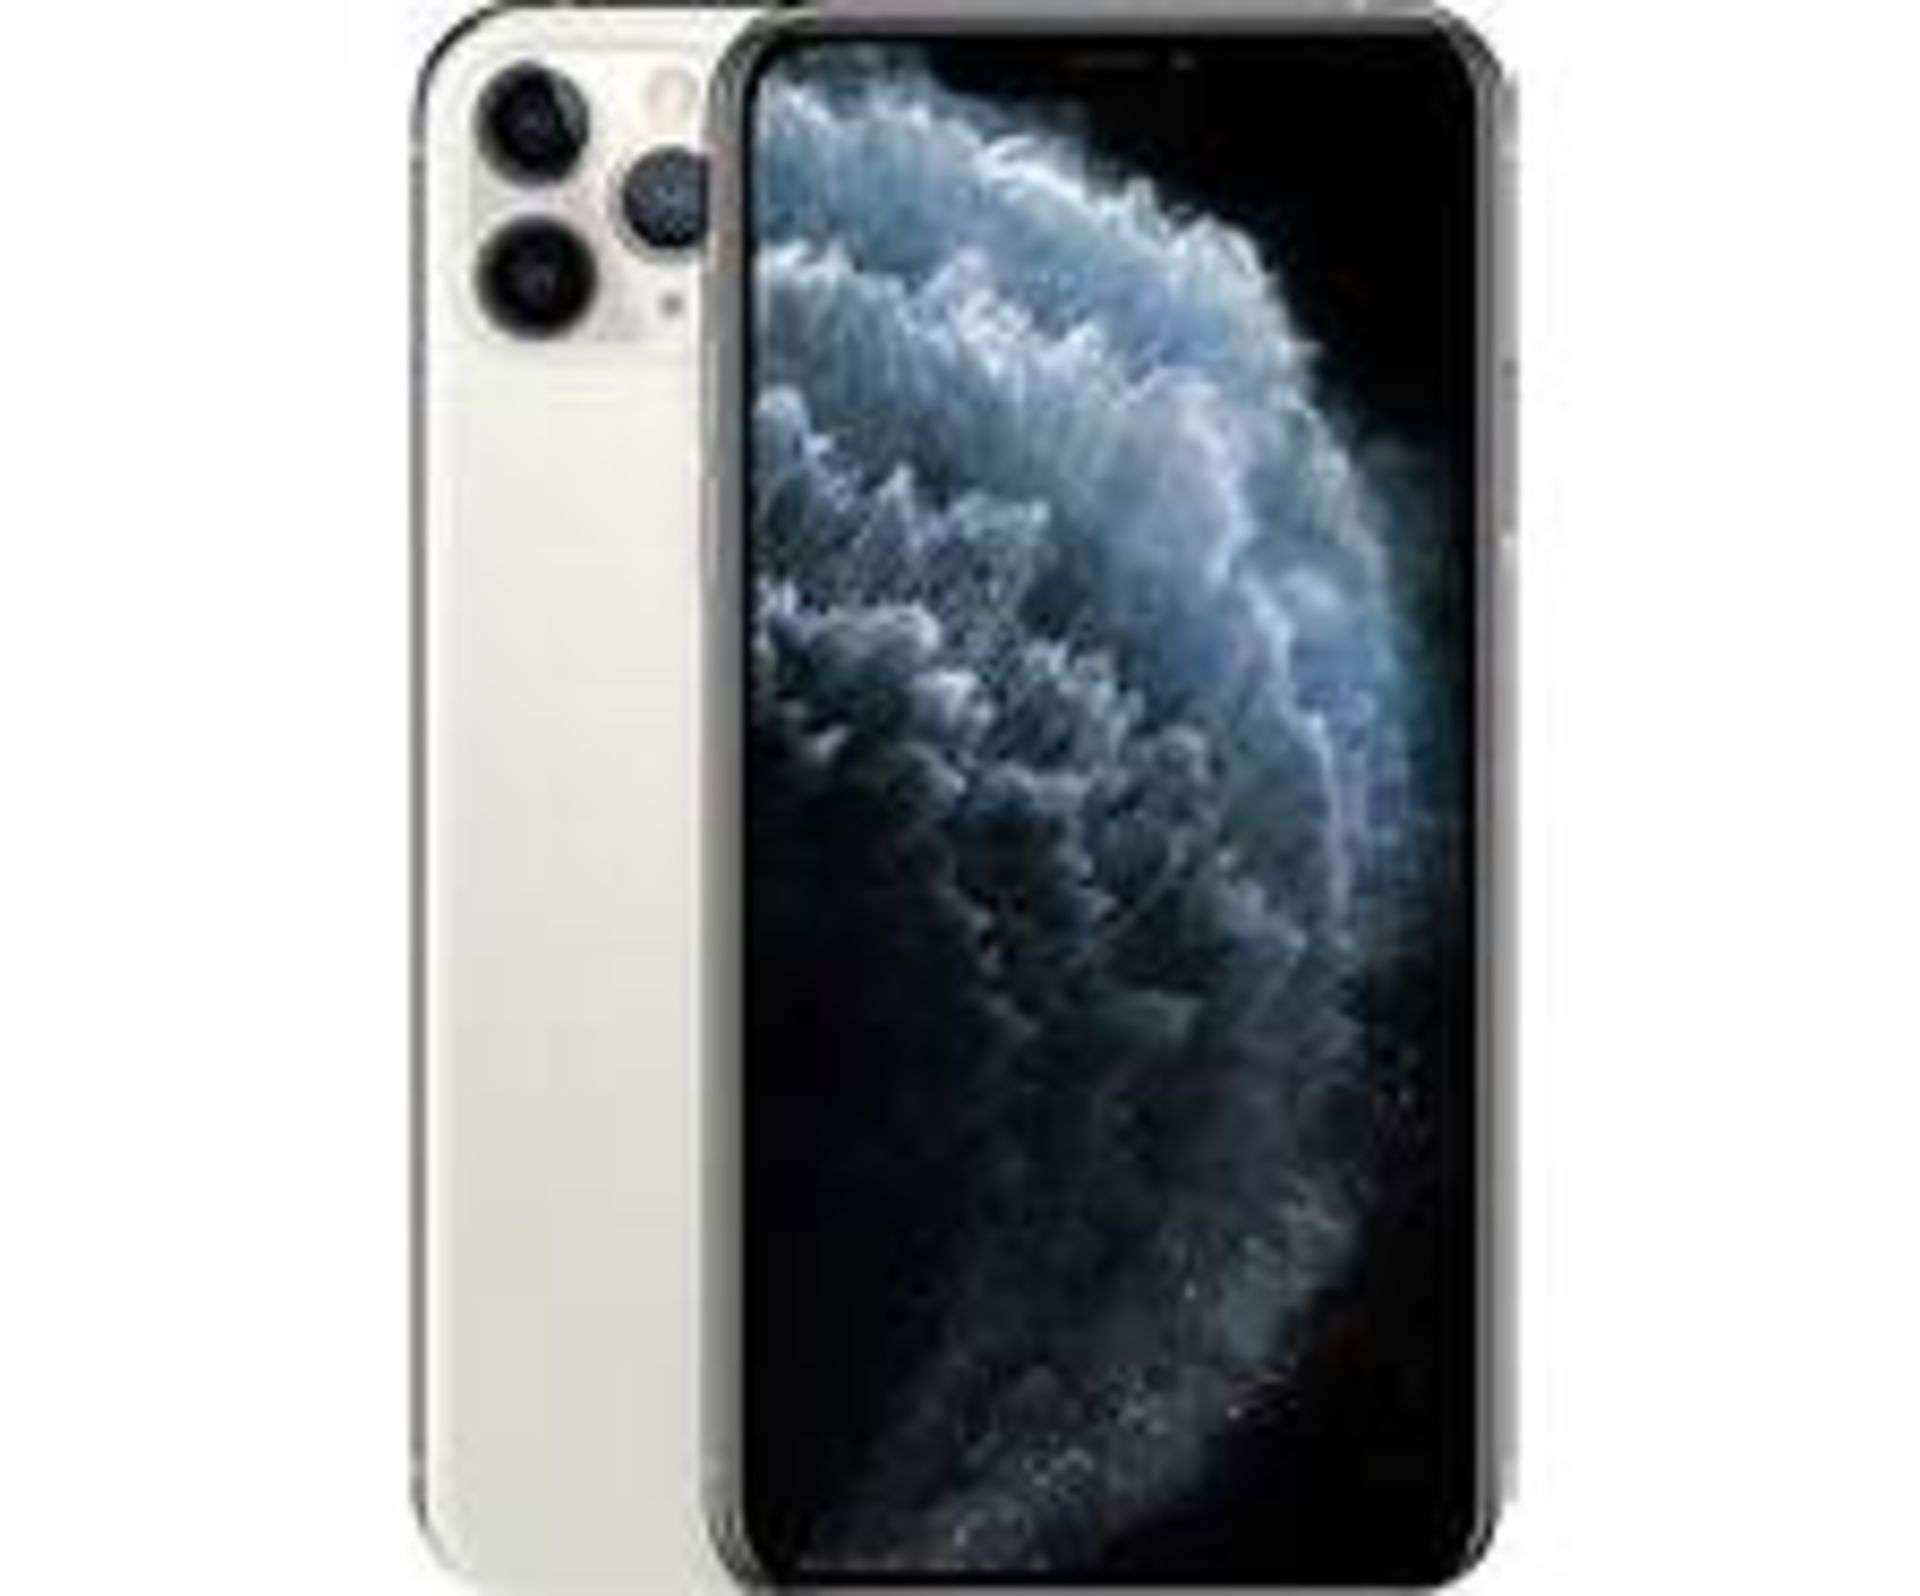 Lot 34 - Apple iPhone 11 Pro Max 256GB Silver. RRP £1300 - Grade A - Perfect Working Condition - (Fully